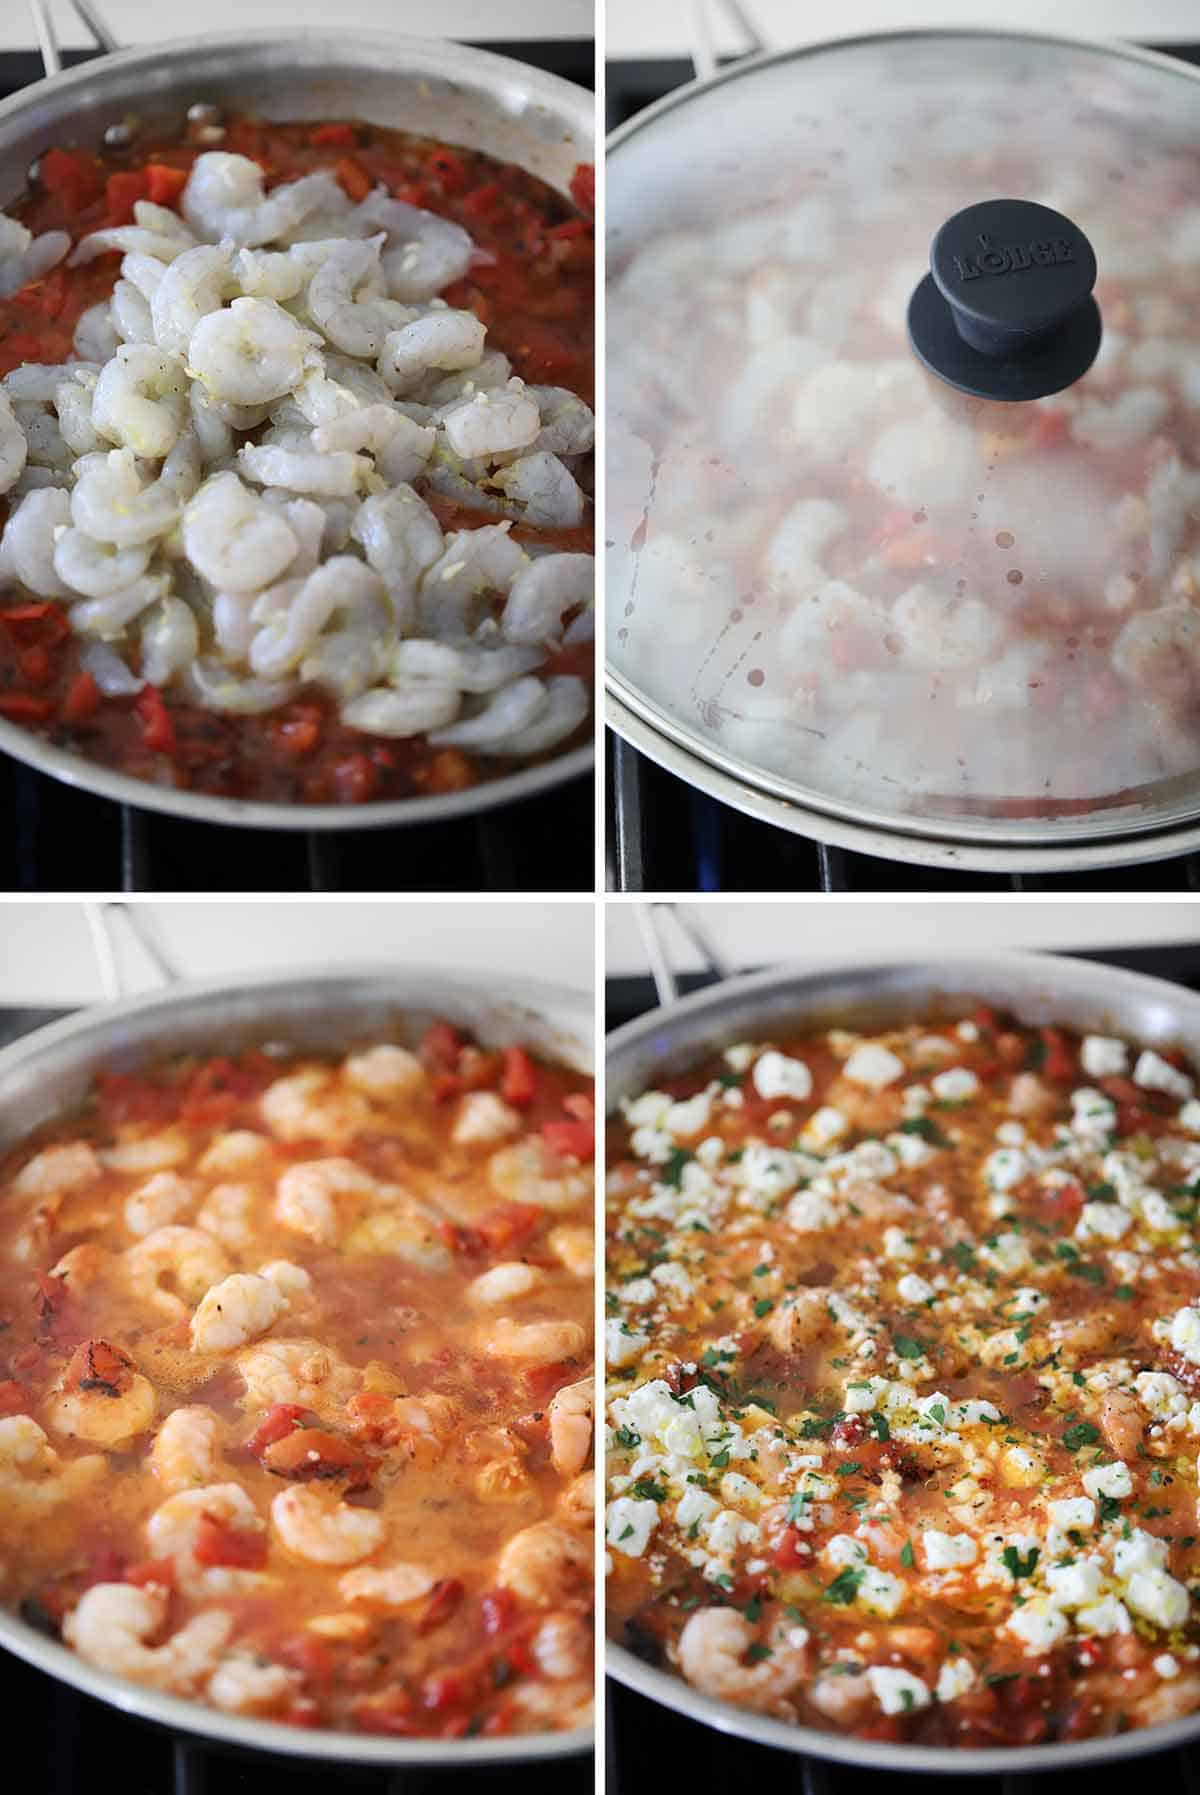 Process collage showing simmering shrimp in tomato sauce and topping with feta.